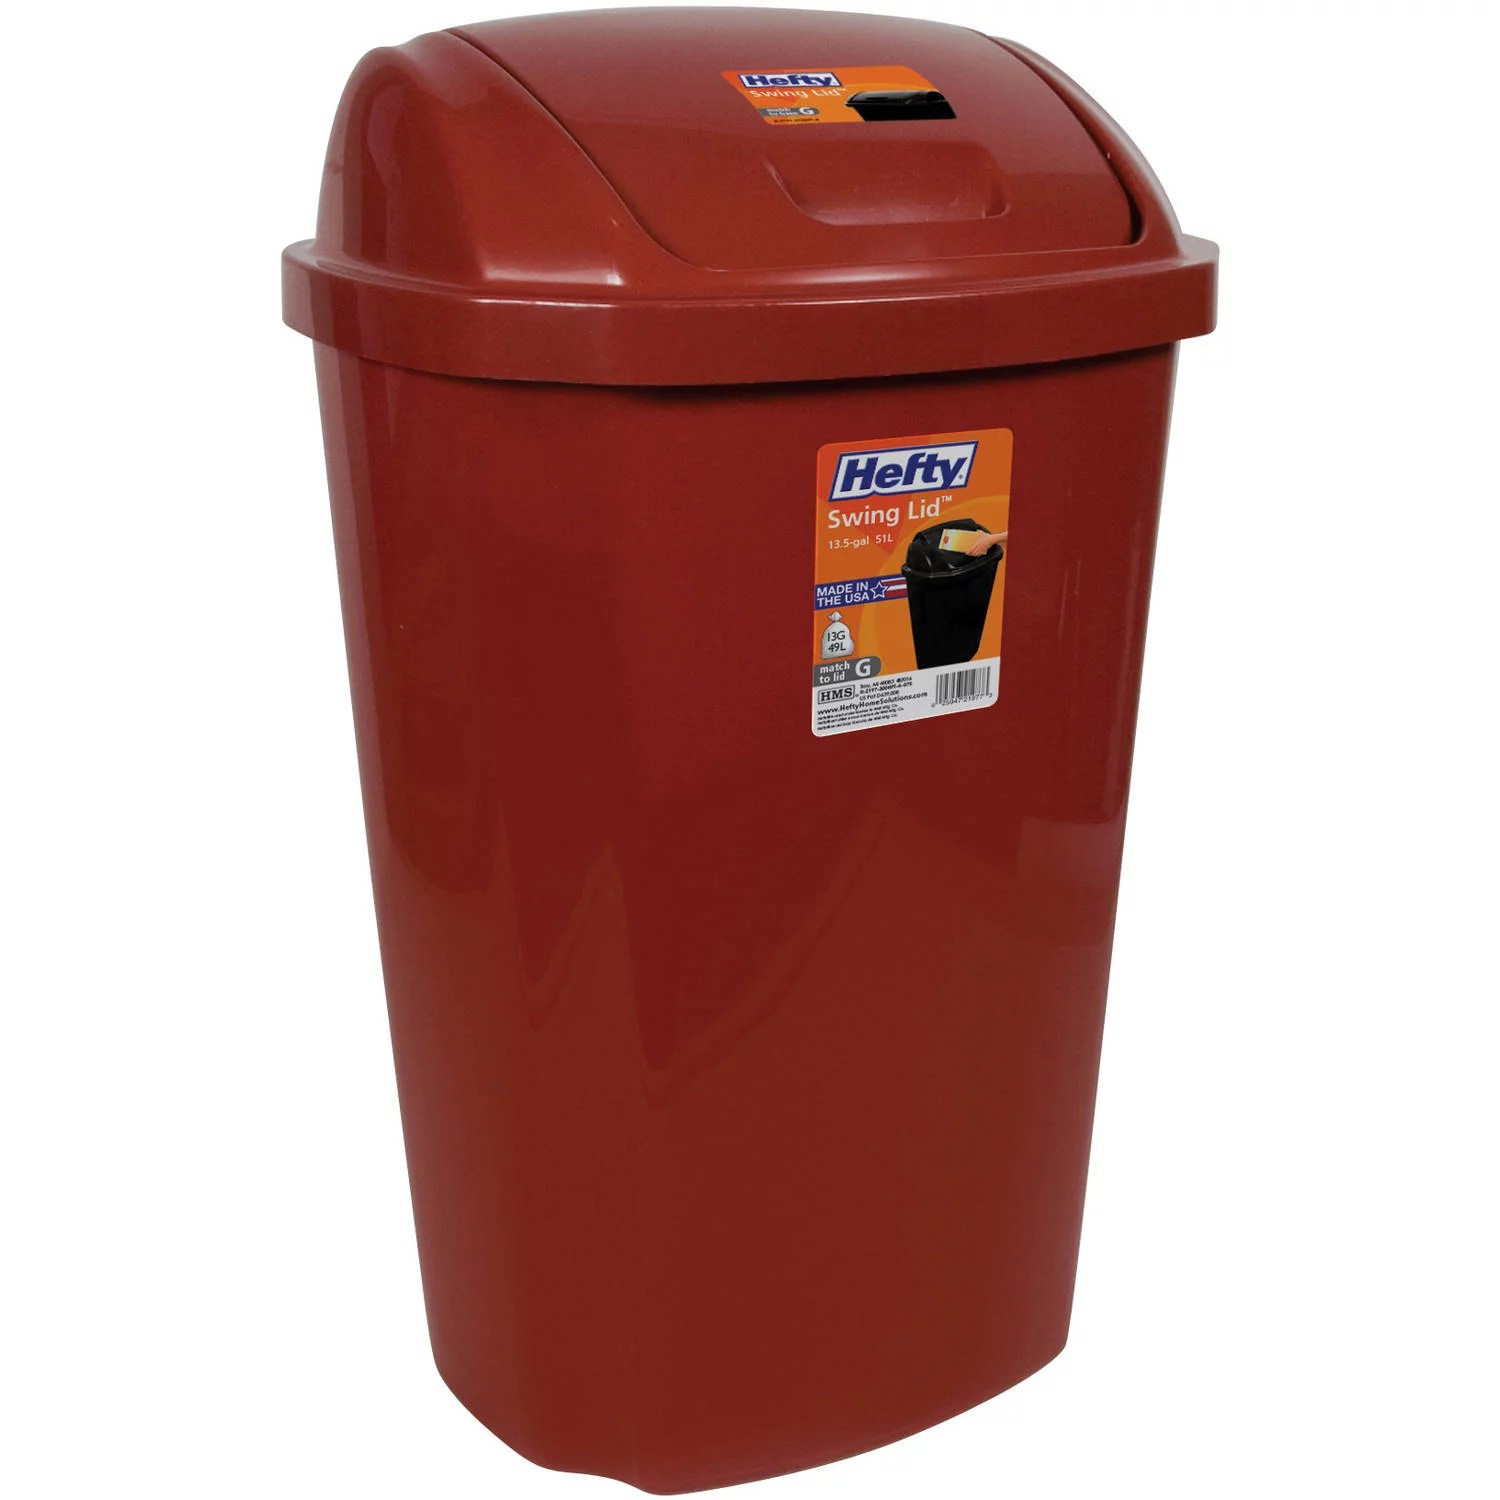 Kitchen Trash Can 13.5 Gallon Hefty Swing Lid Red Waste